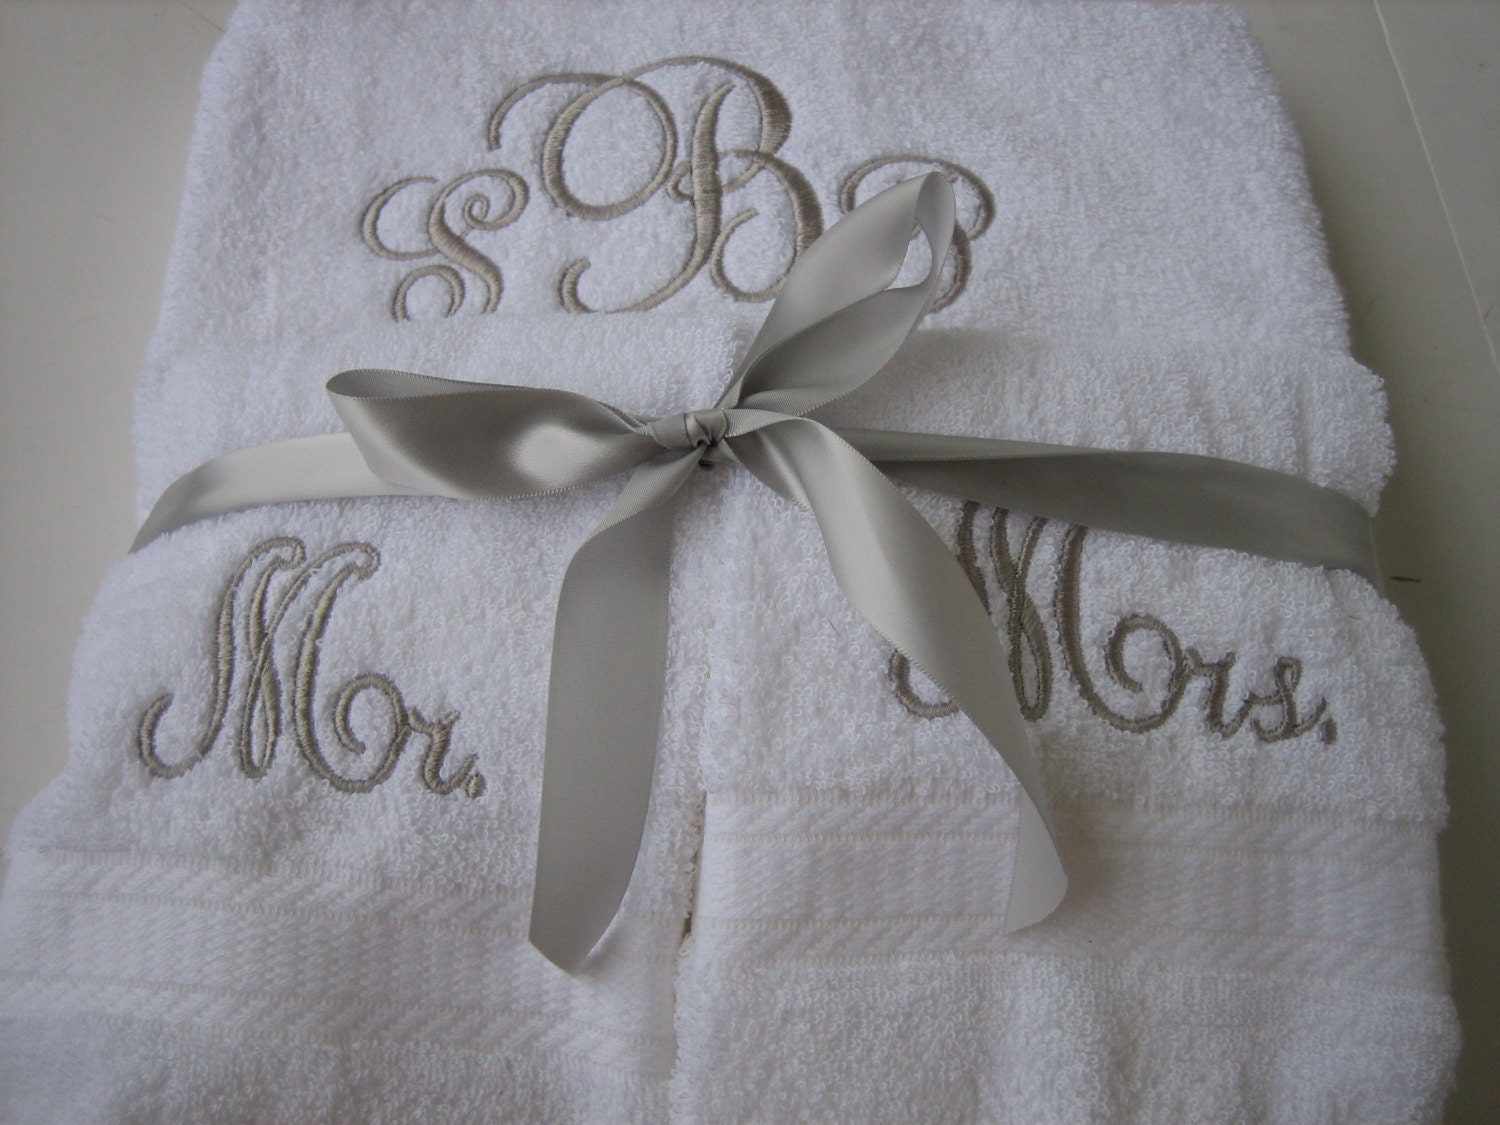 Personalised Wedding Gifts Towels : Mr & Mrs Monogram Towel Set Personalized Wedding Towel Set